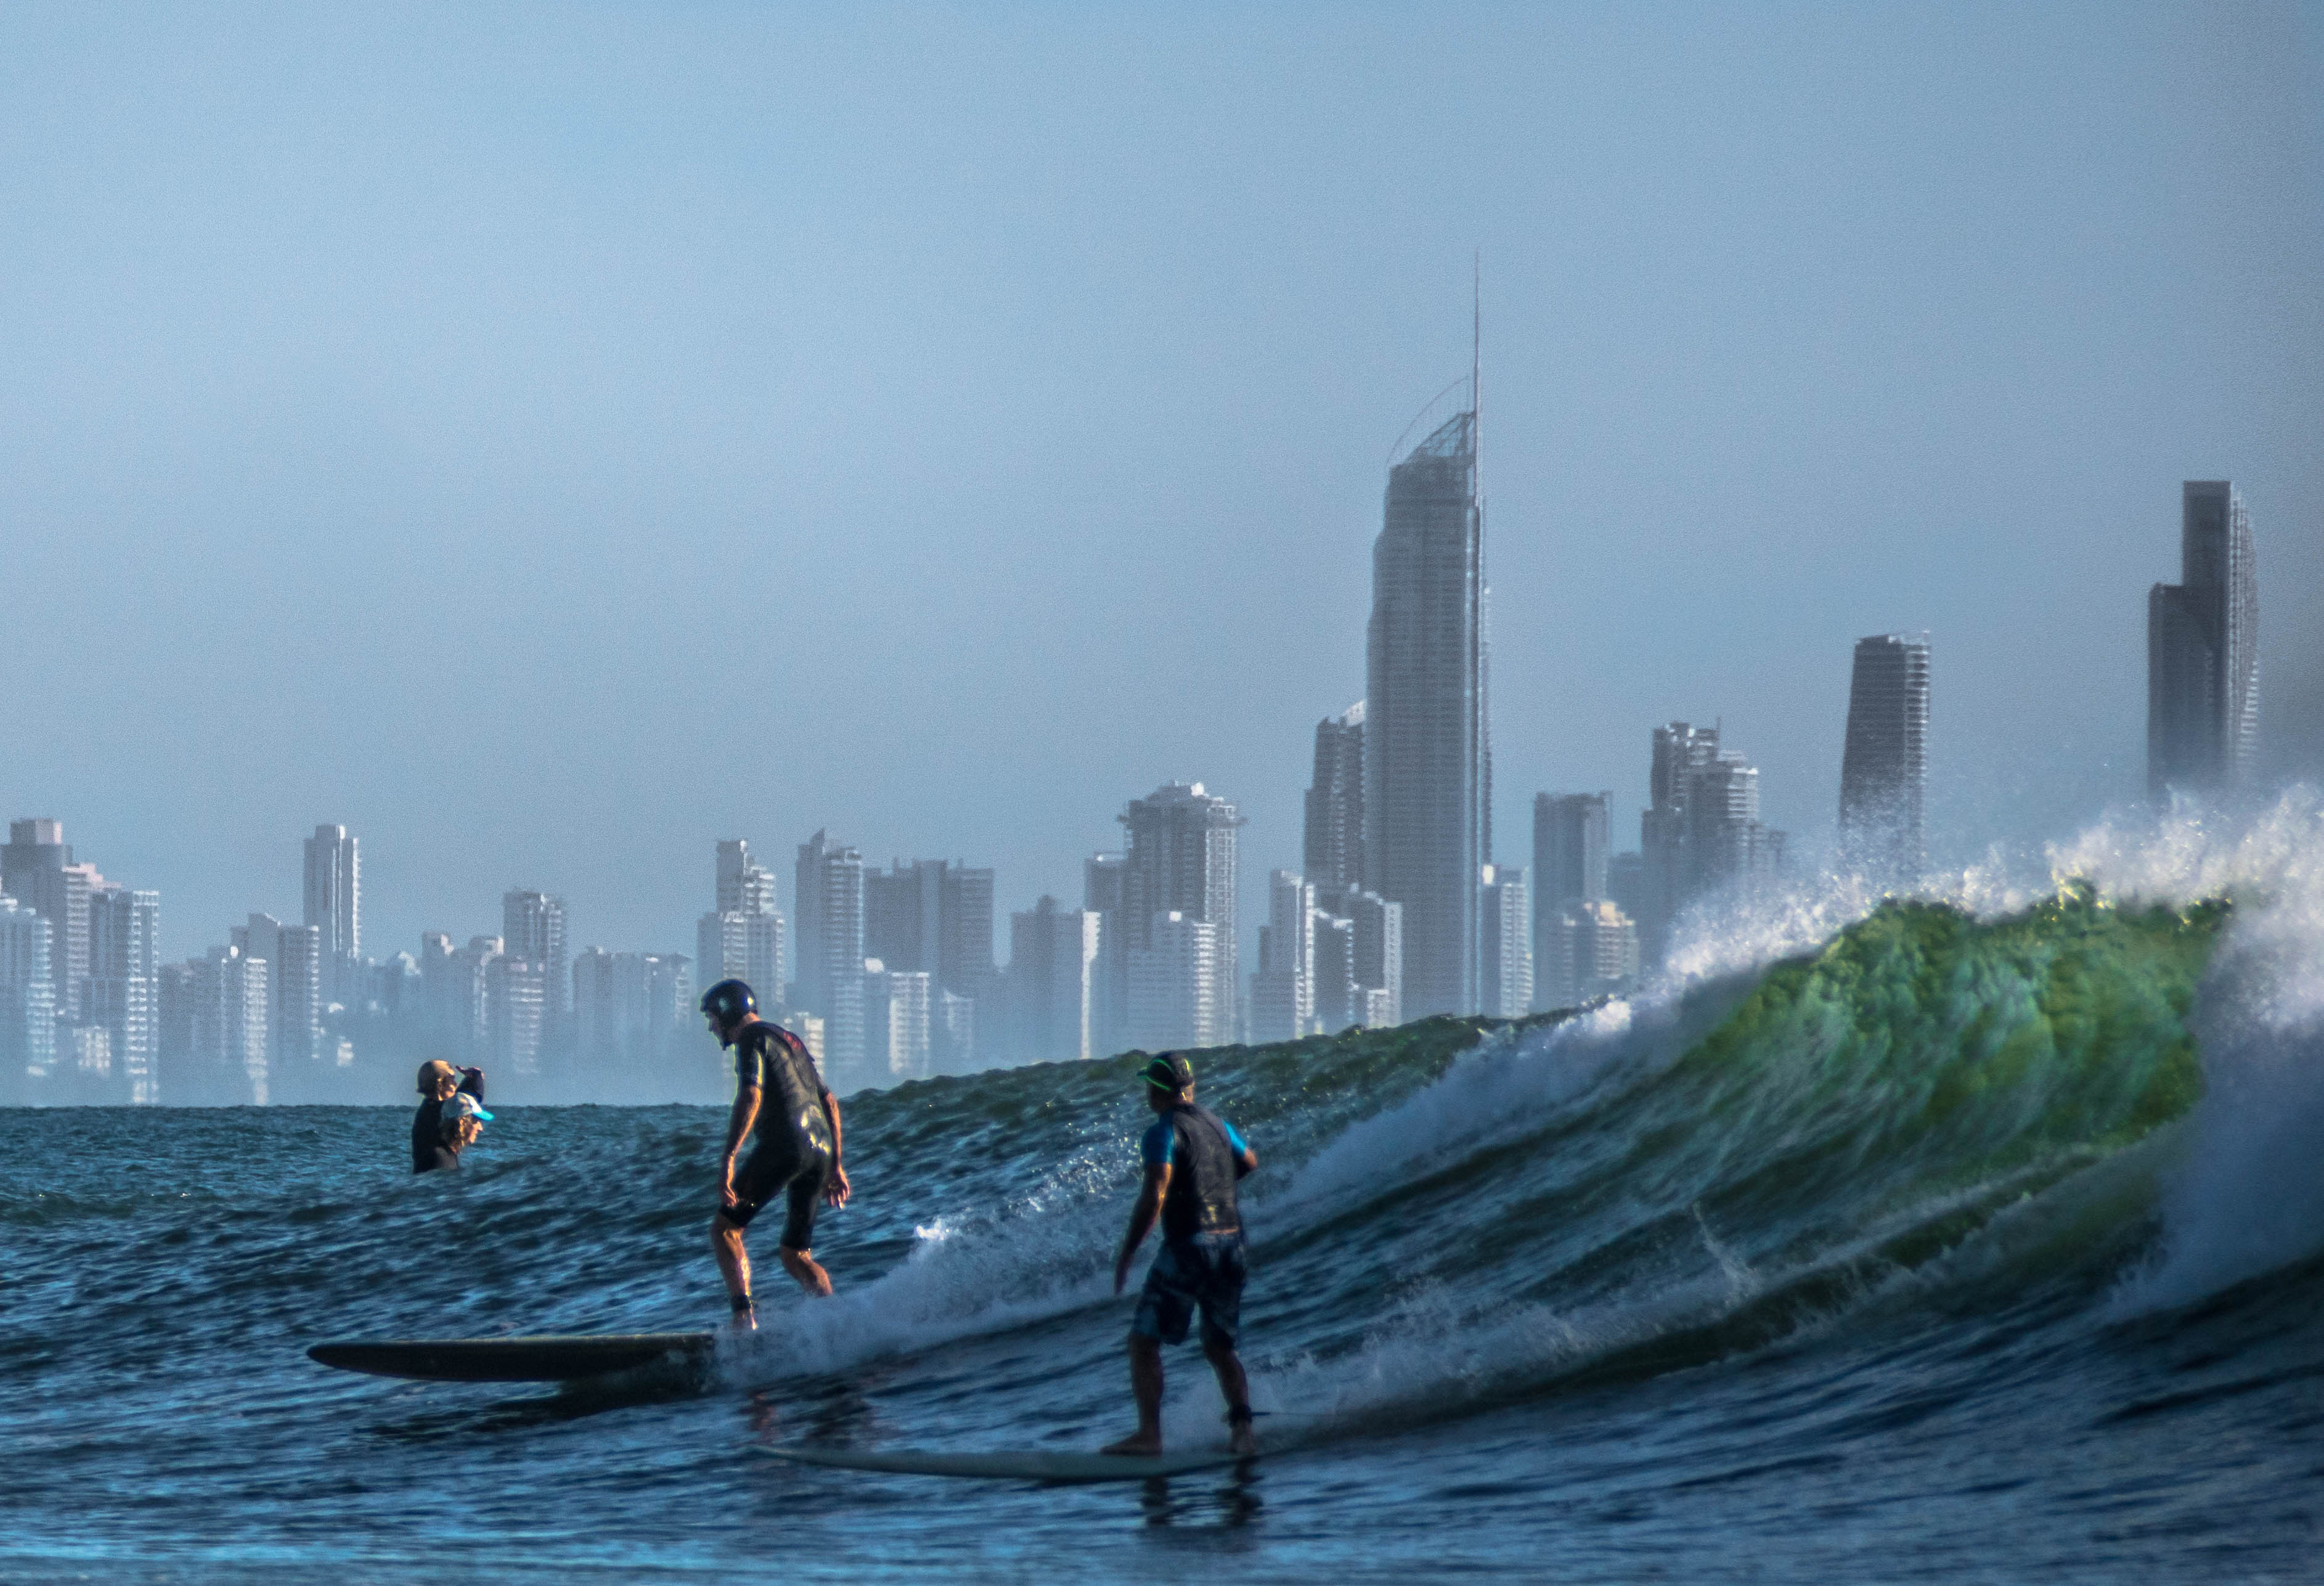 Wallpaper Burleigh Heads Beach Gold Coast Queensland: Why Is The Australian Gold Coast The Perfect Spot To Shoot